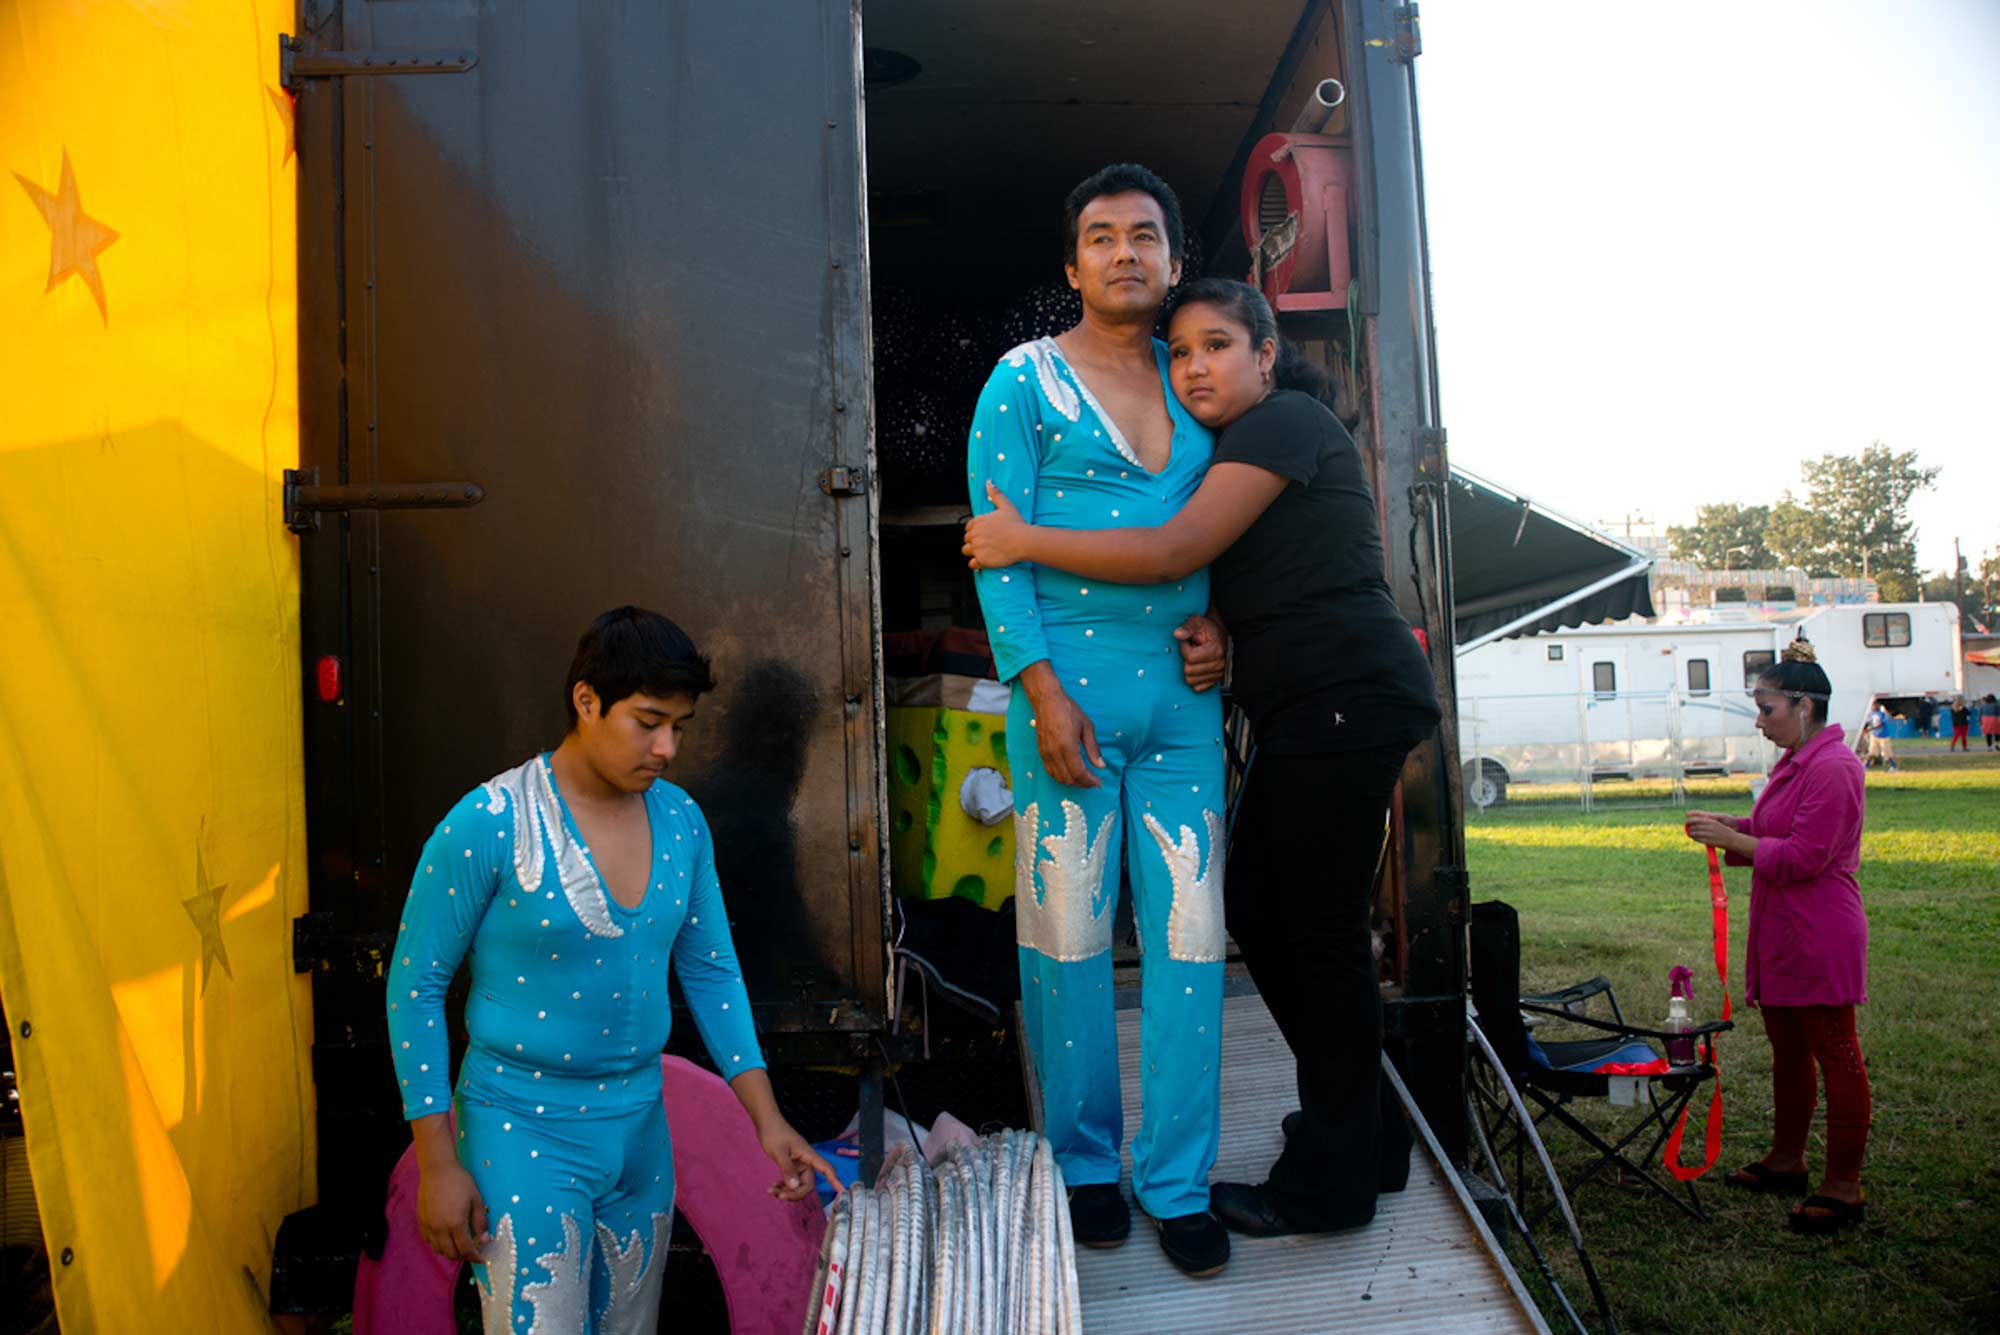 Romario Perez (left), 15, and his father Memo prepare to perform together on the Giant Space Wheel of Destiny. Memo, Romario, and Romario's sister Belgica (third from left), make up one of the two families that currently perform with the Star Family Circus.